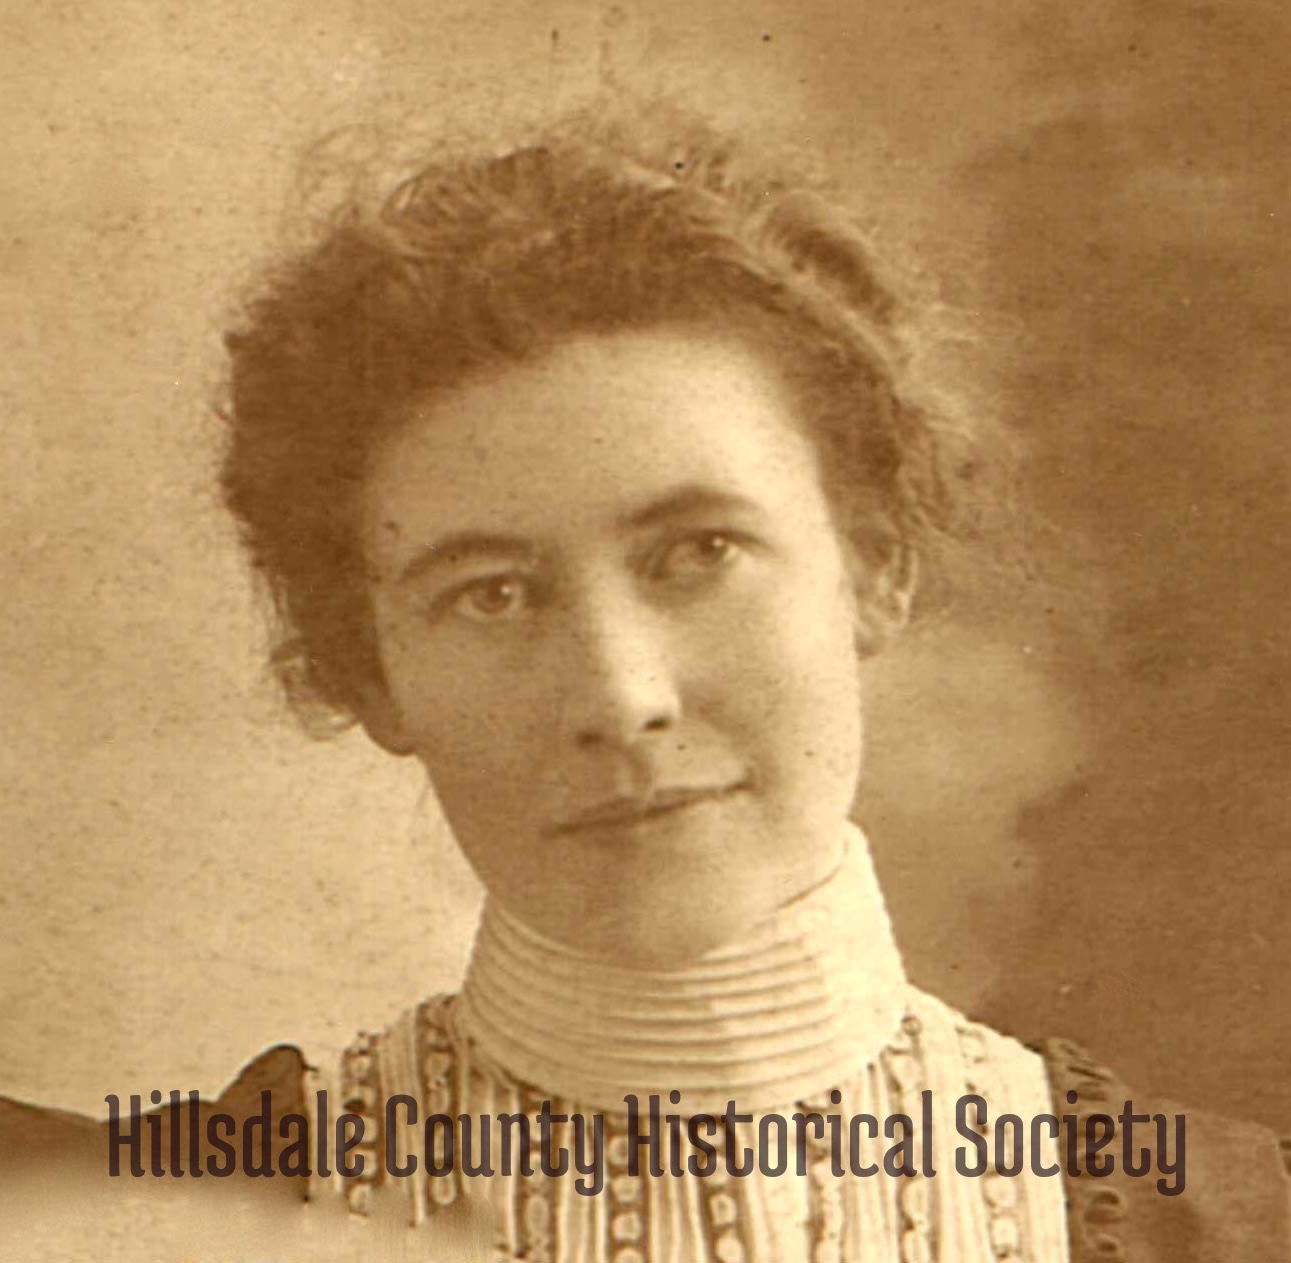 Gertrude March Sutton, who became part owner and the manager/editor of The Hillsdale Leader in the early 1900s